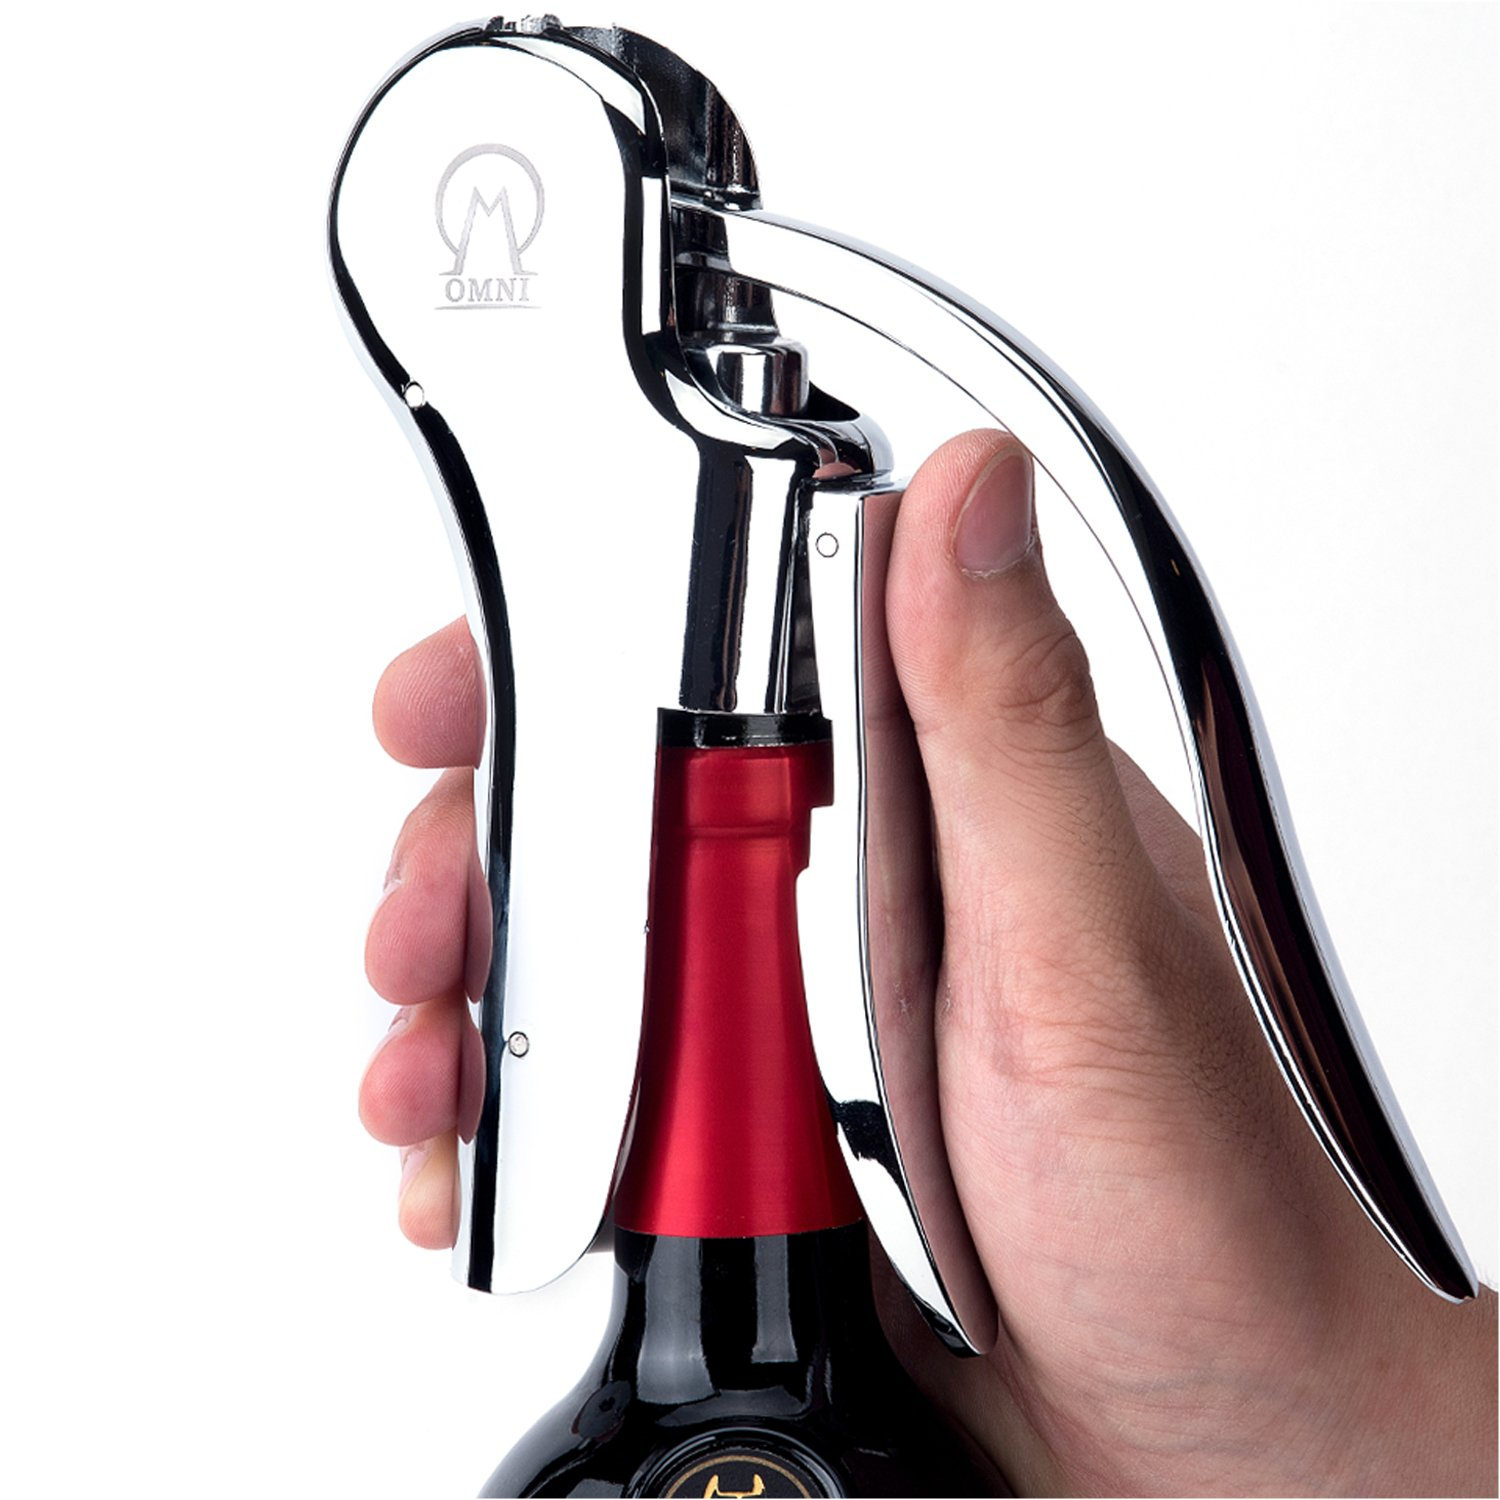 Vintorio Wine Opener Omni Edition - Premium Lever Pull Corkscrew Set - The Ultimate Gift For Wine Lovers